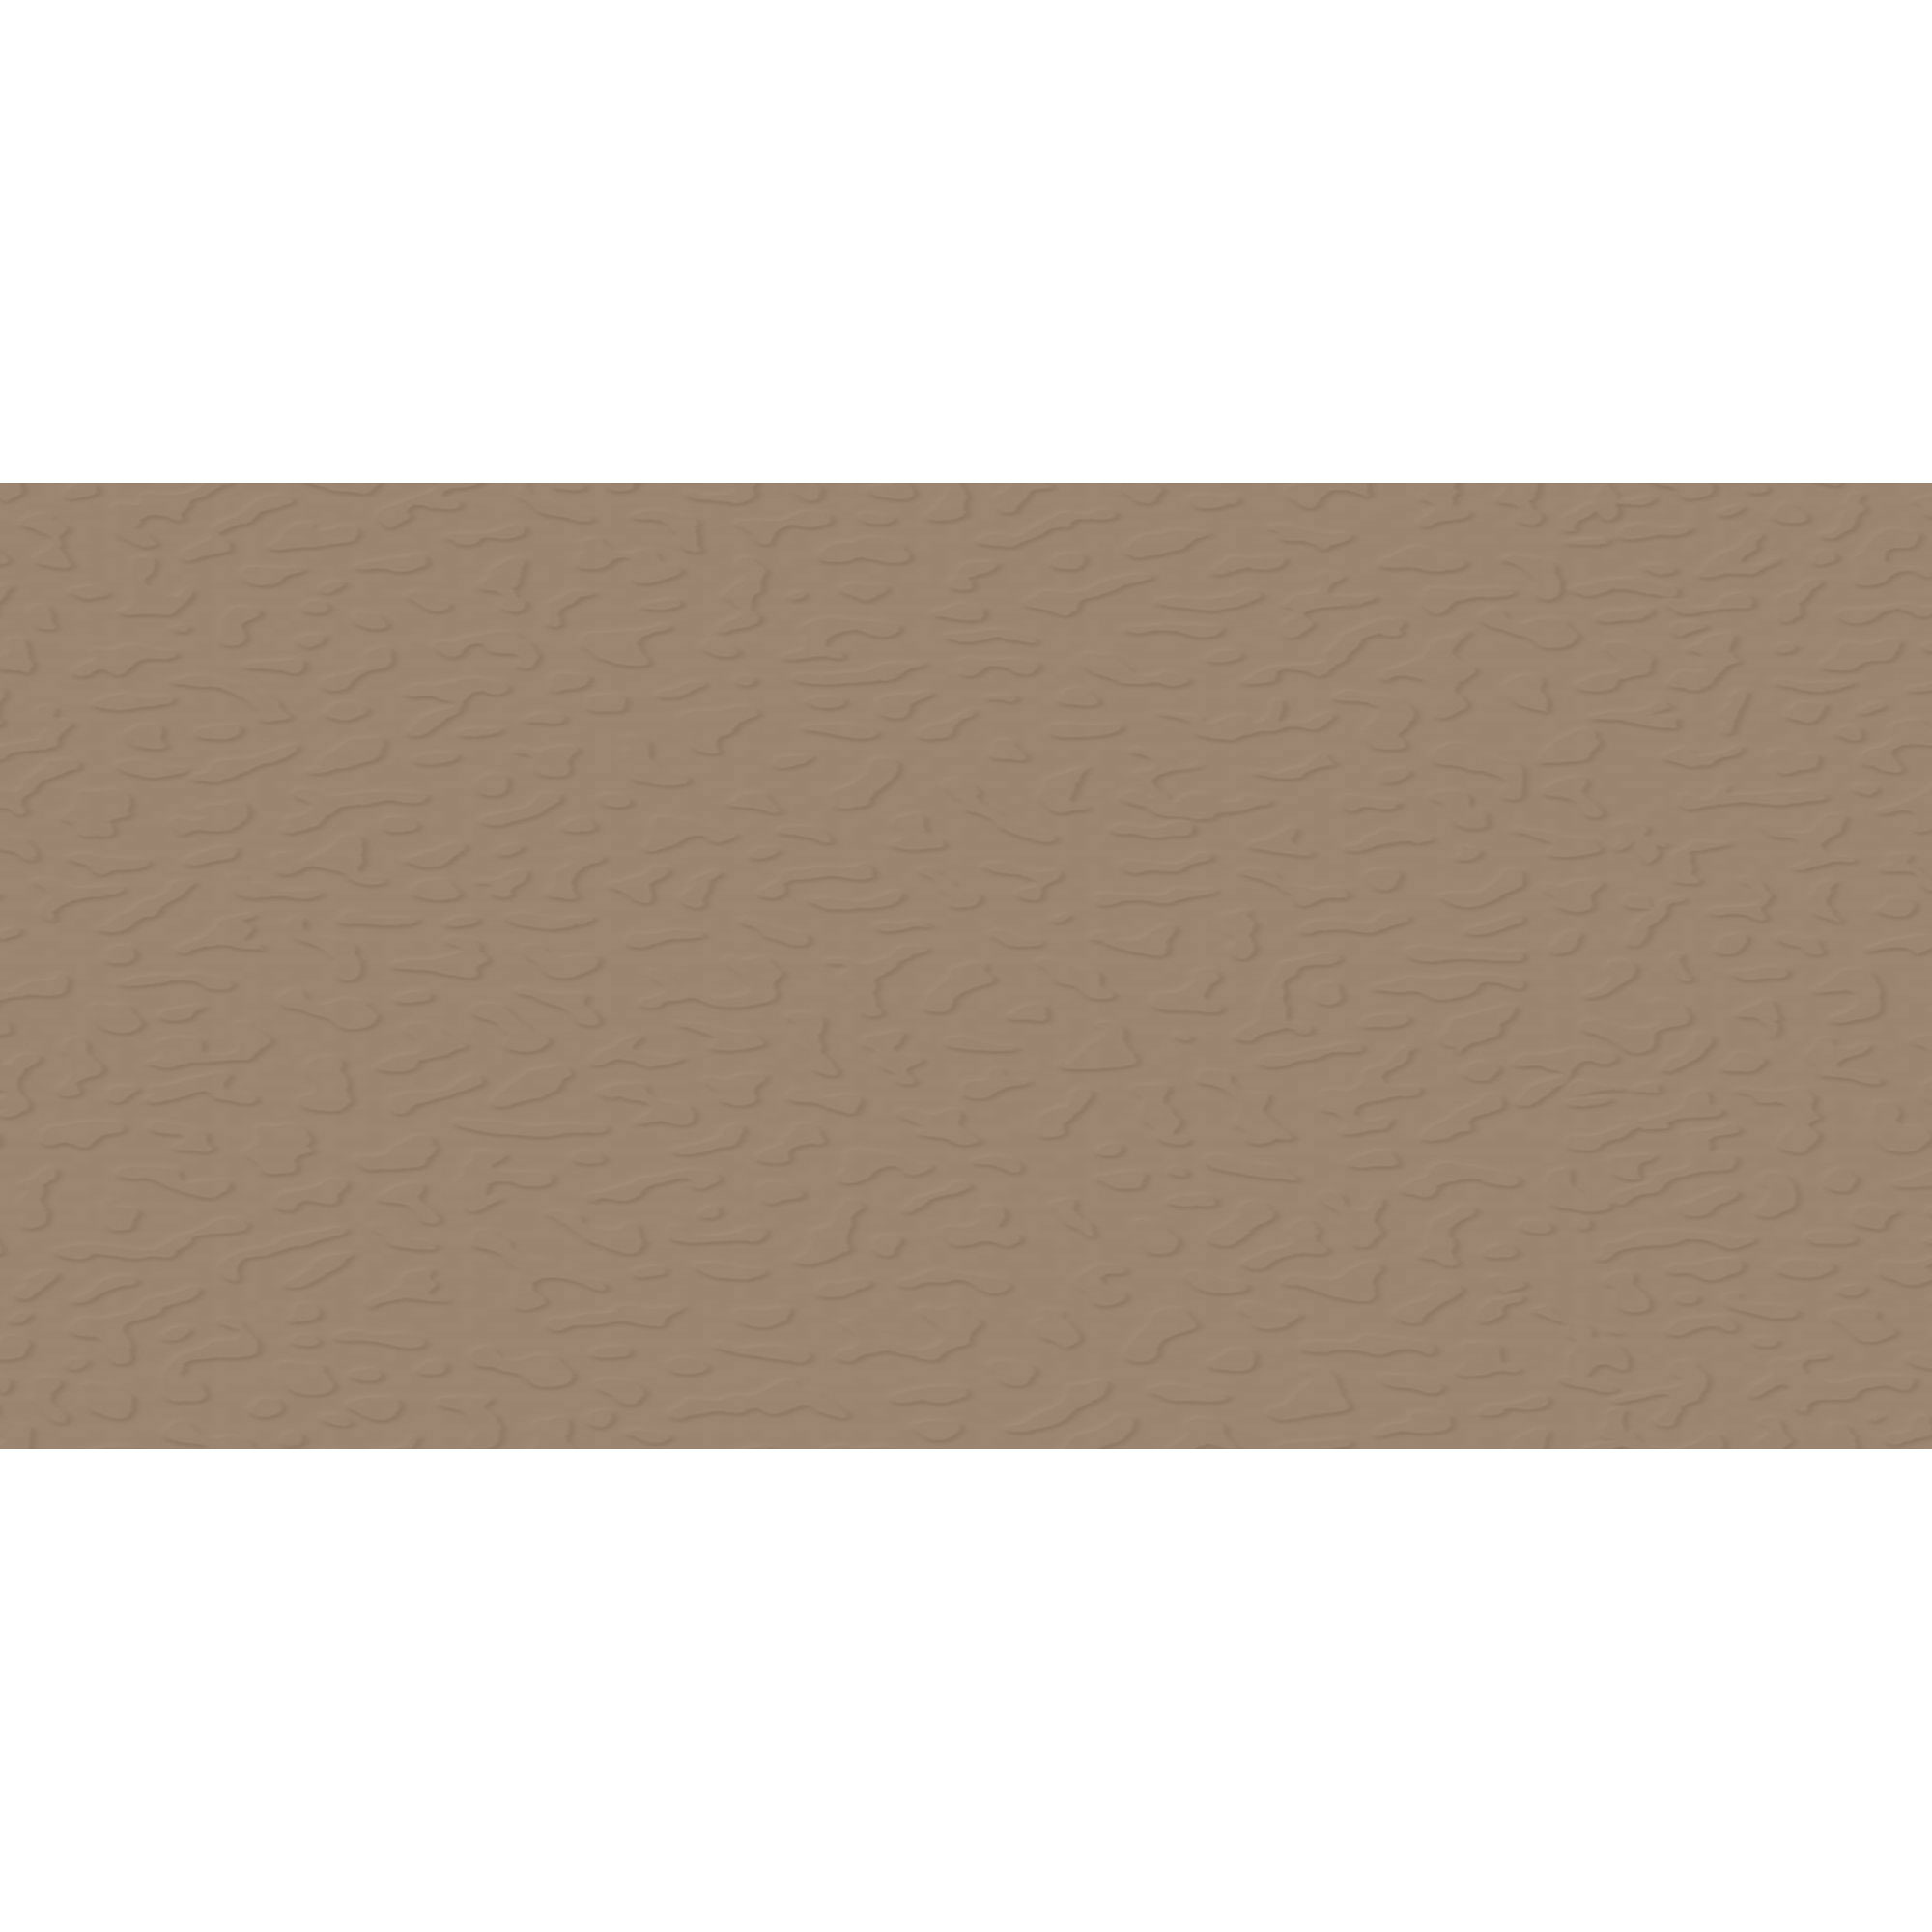 Roppe Designers Choice Textured 6 x 12 Buckskin